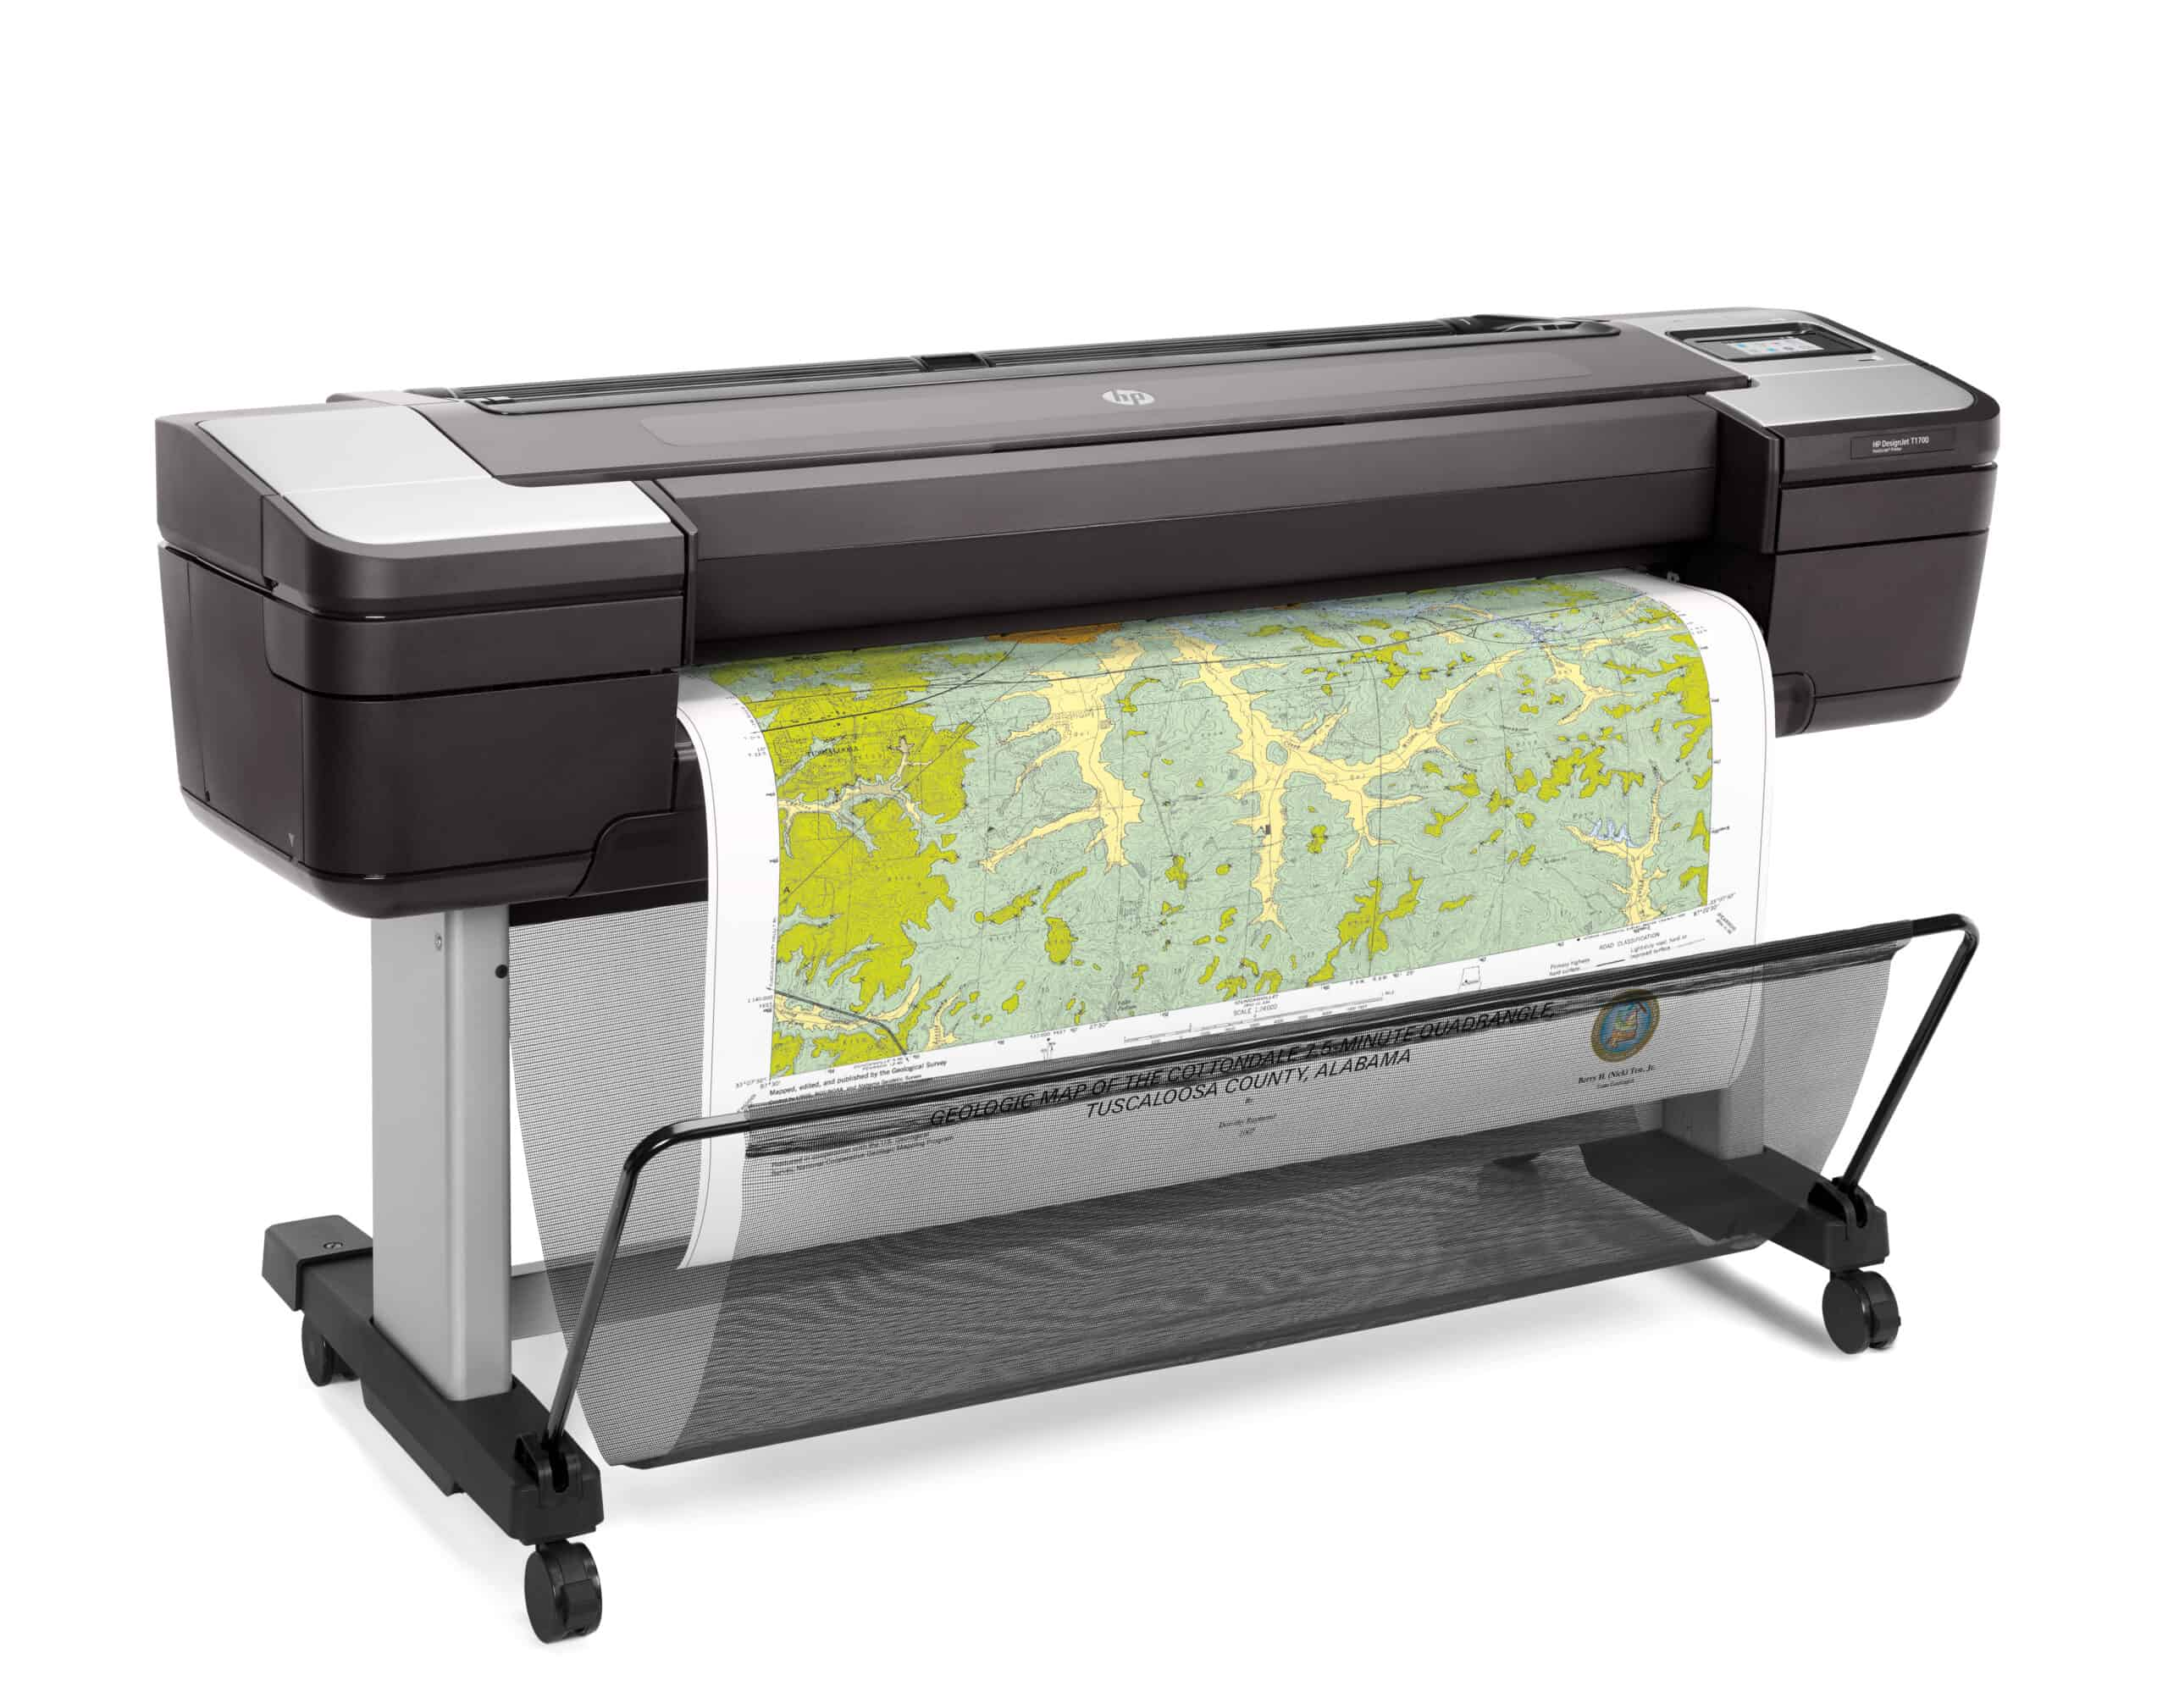 NEW RELEASE HP DesignJet T1700 PostScript (44 inch) Printer